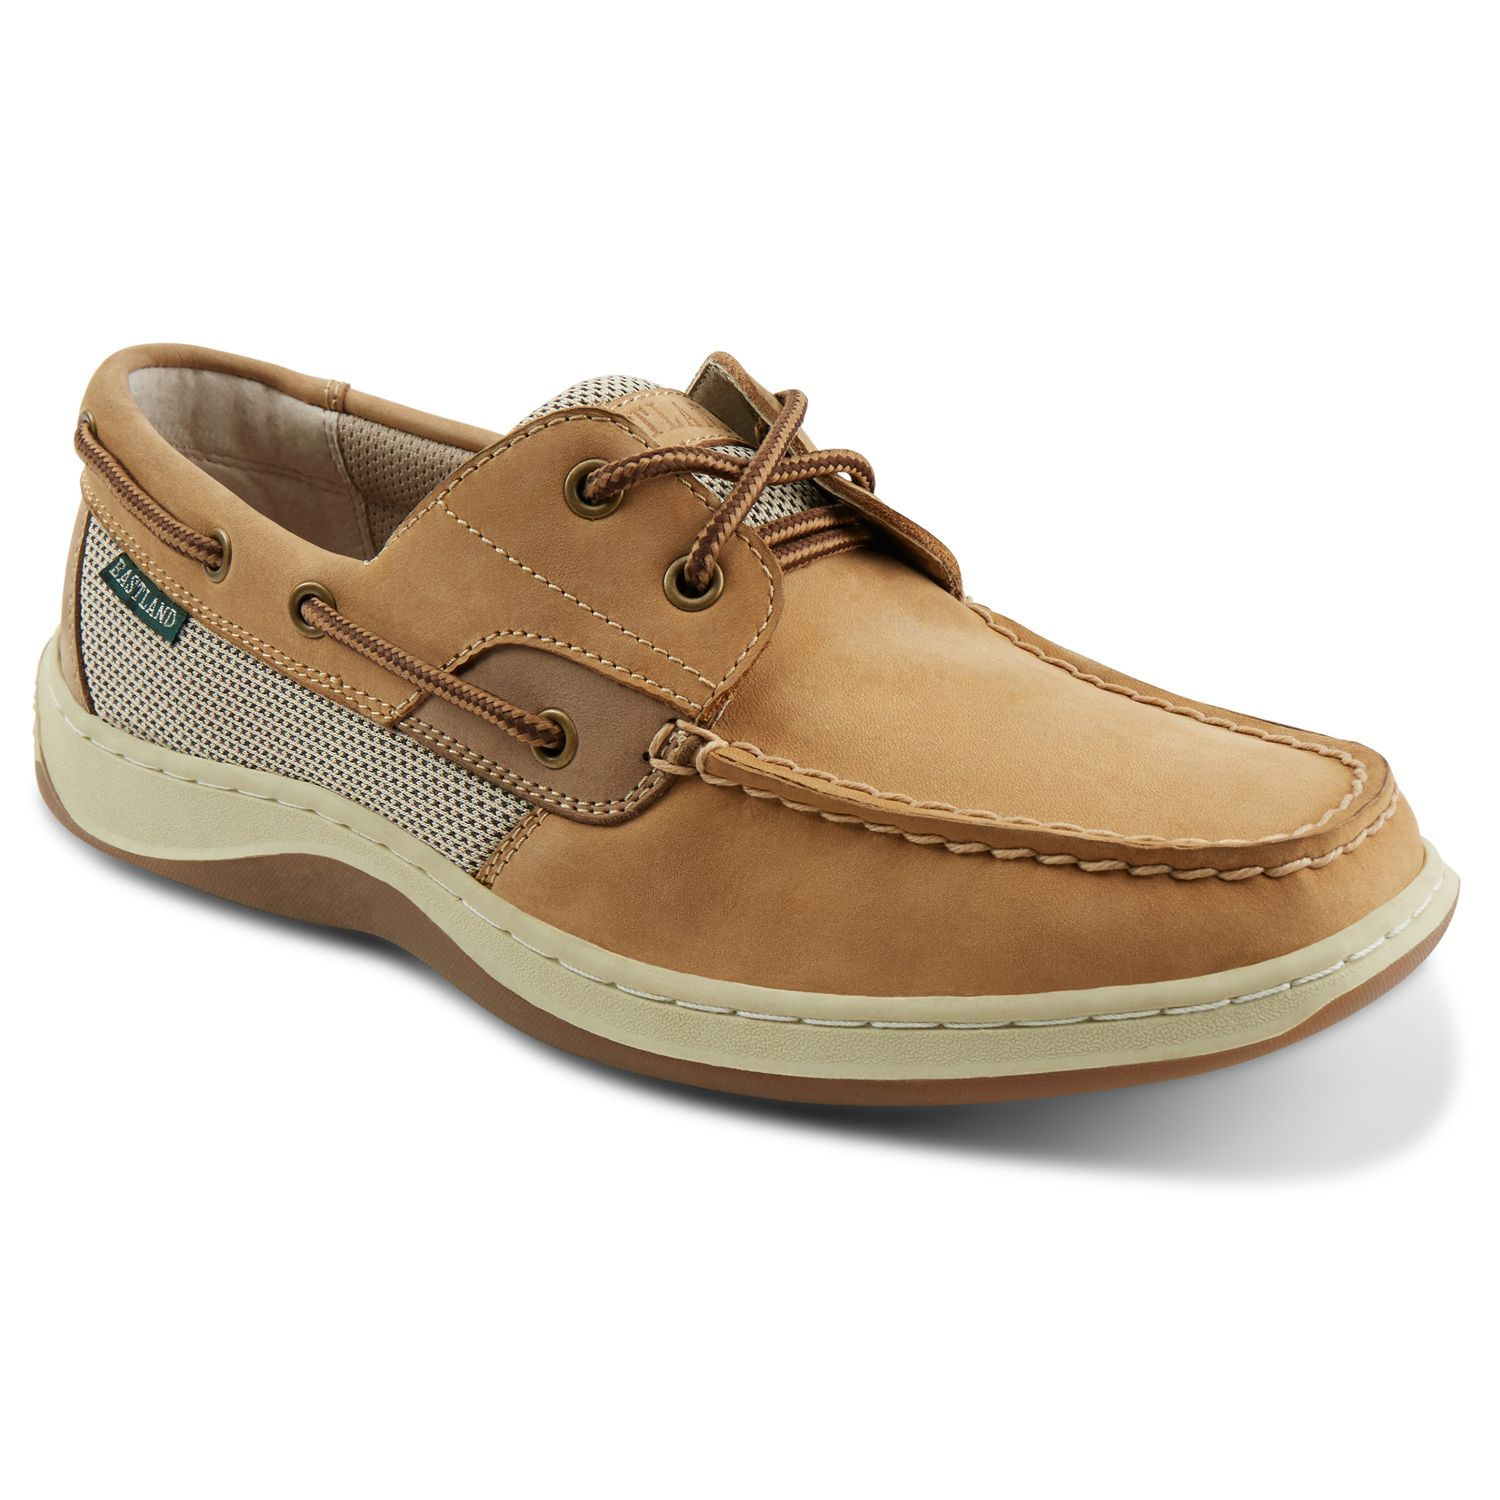 Shoes eastland recommendations to wear in winter in 2019